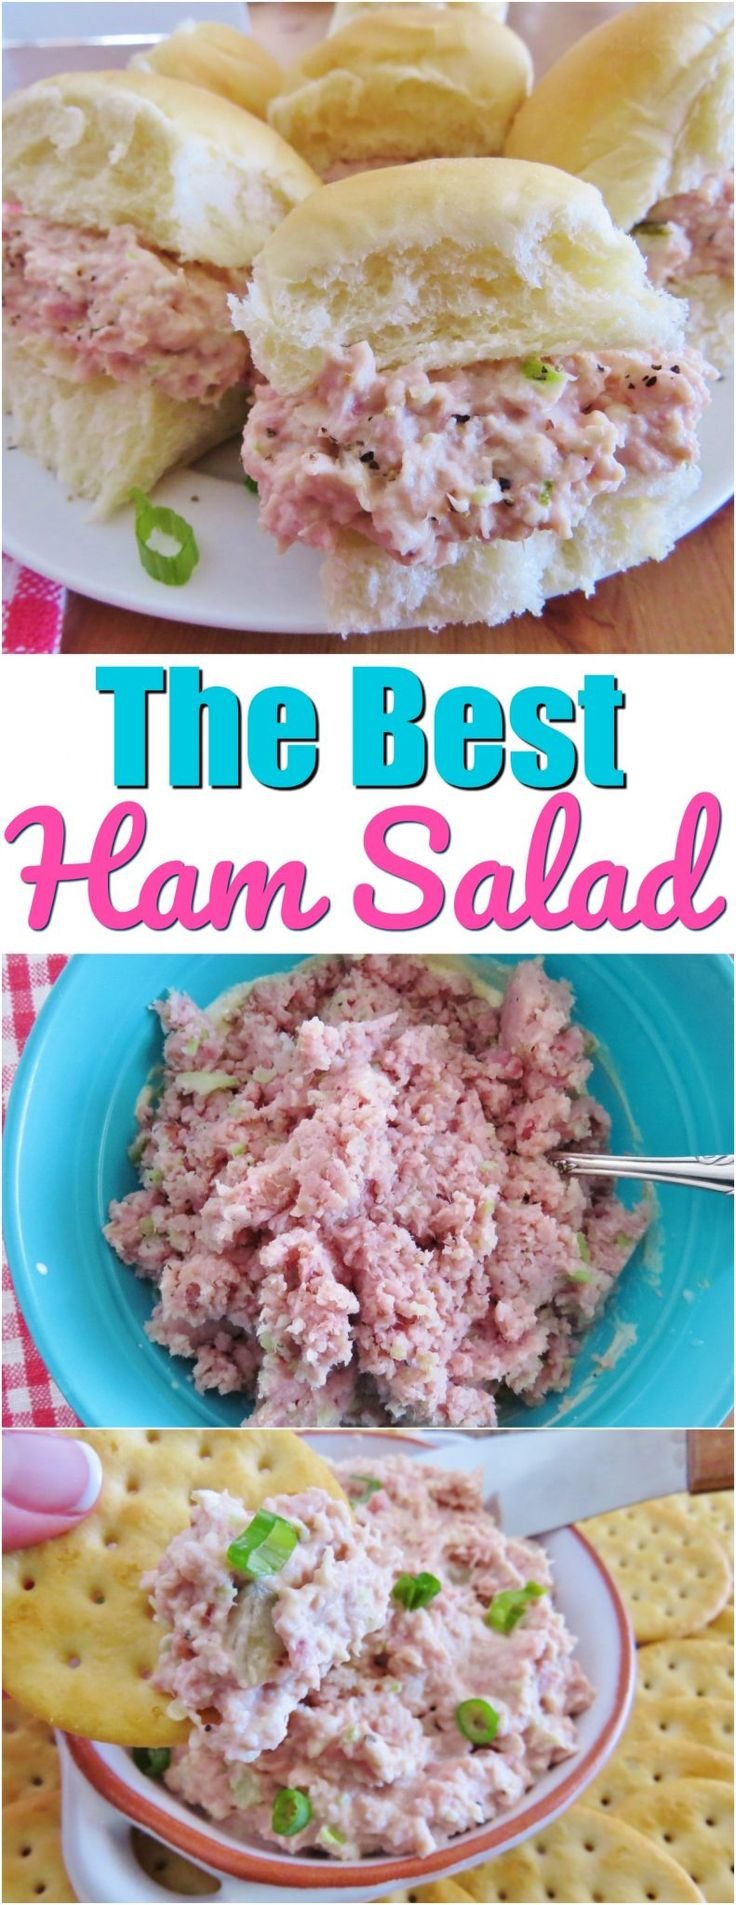 The Best Ham Salad recipe from The Country Cook